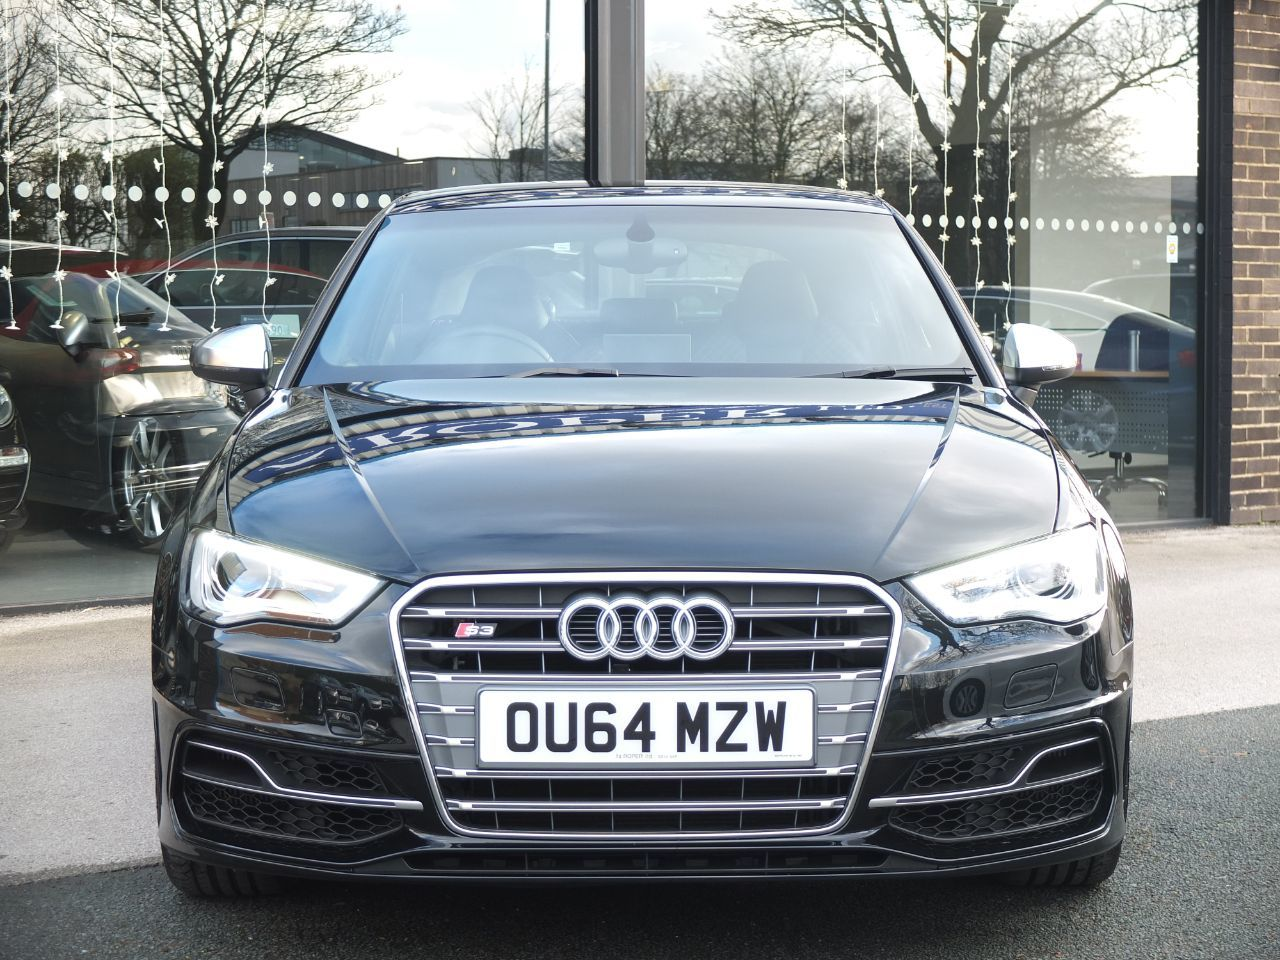 Audi S3 2.0 S3 TFSI Quattro 3dr S Tronic (Super Sports Seats) +++Spec Hatchback Petrol Mythos Black Metallic